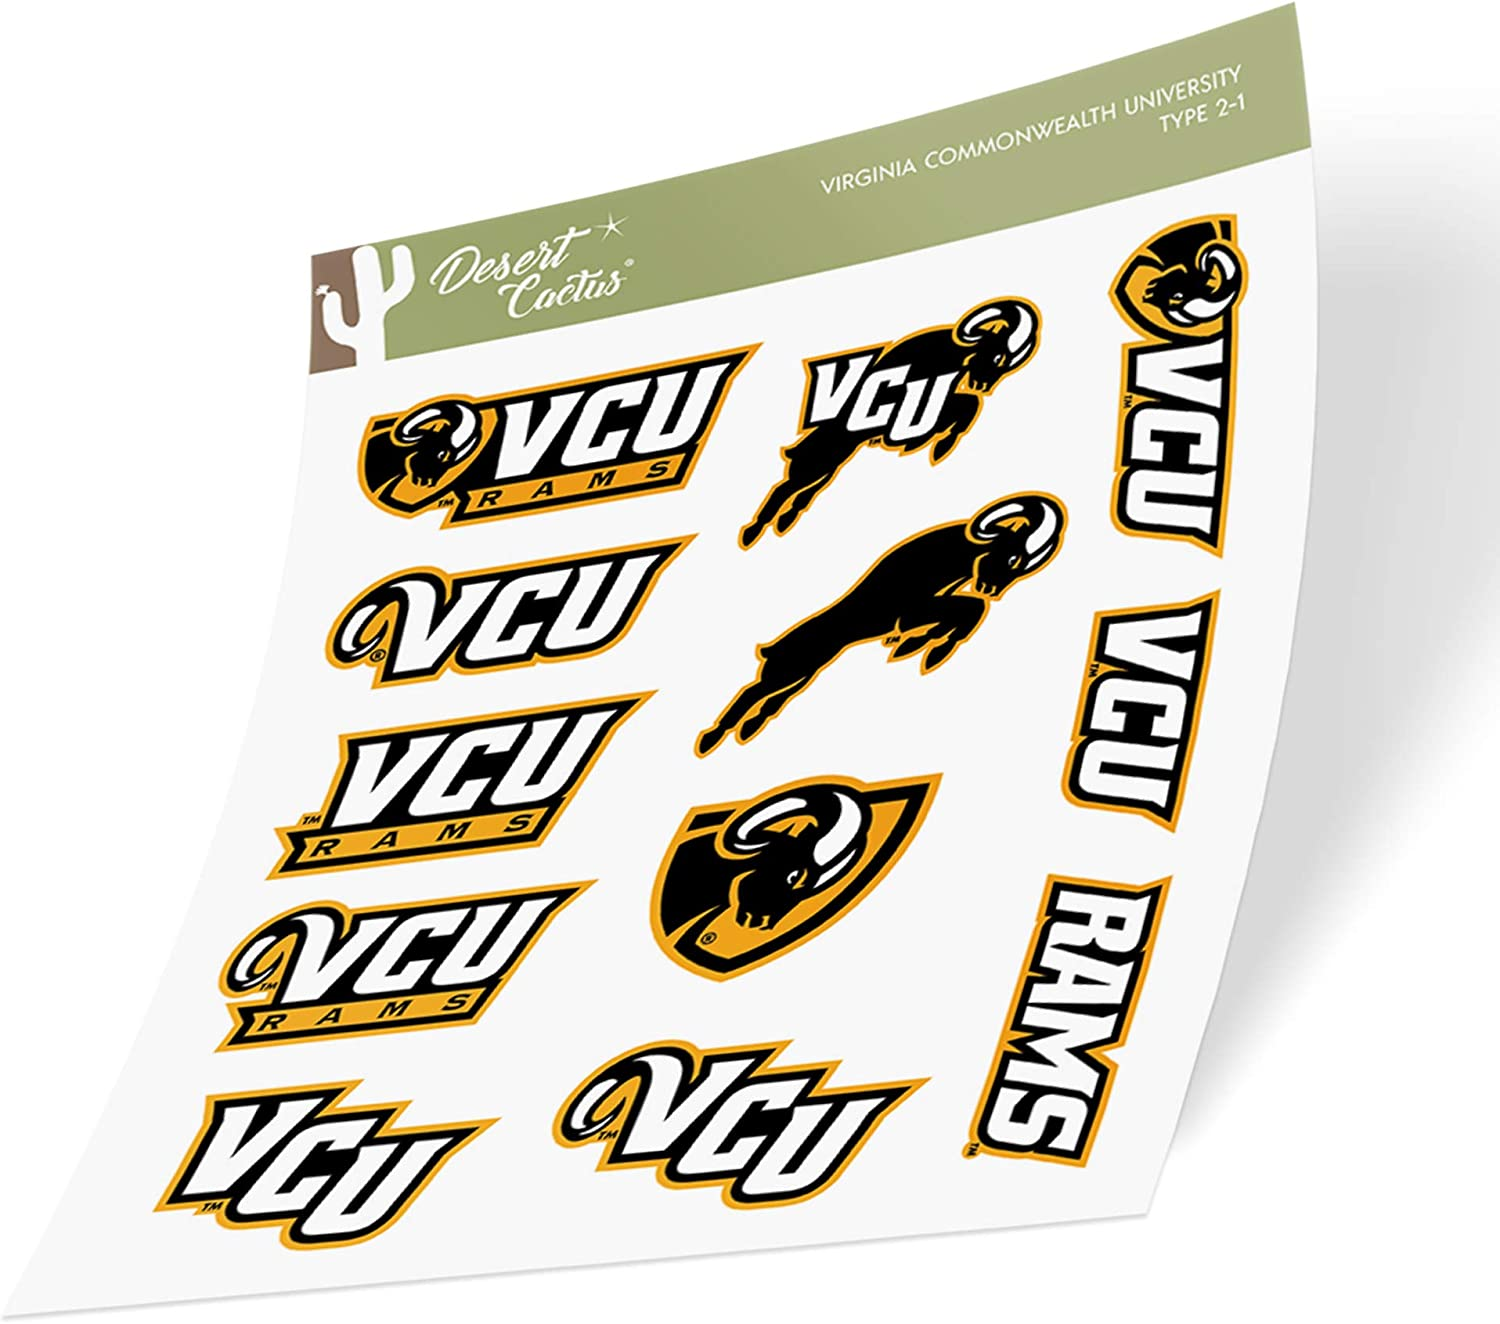 Virginia Commonwealth University VCU Rams NCAA Sticker Vinyl Decal Laptop Water Bottle Car Scrapbook (Type 2 Sheet)